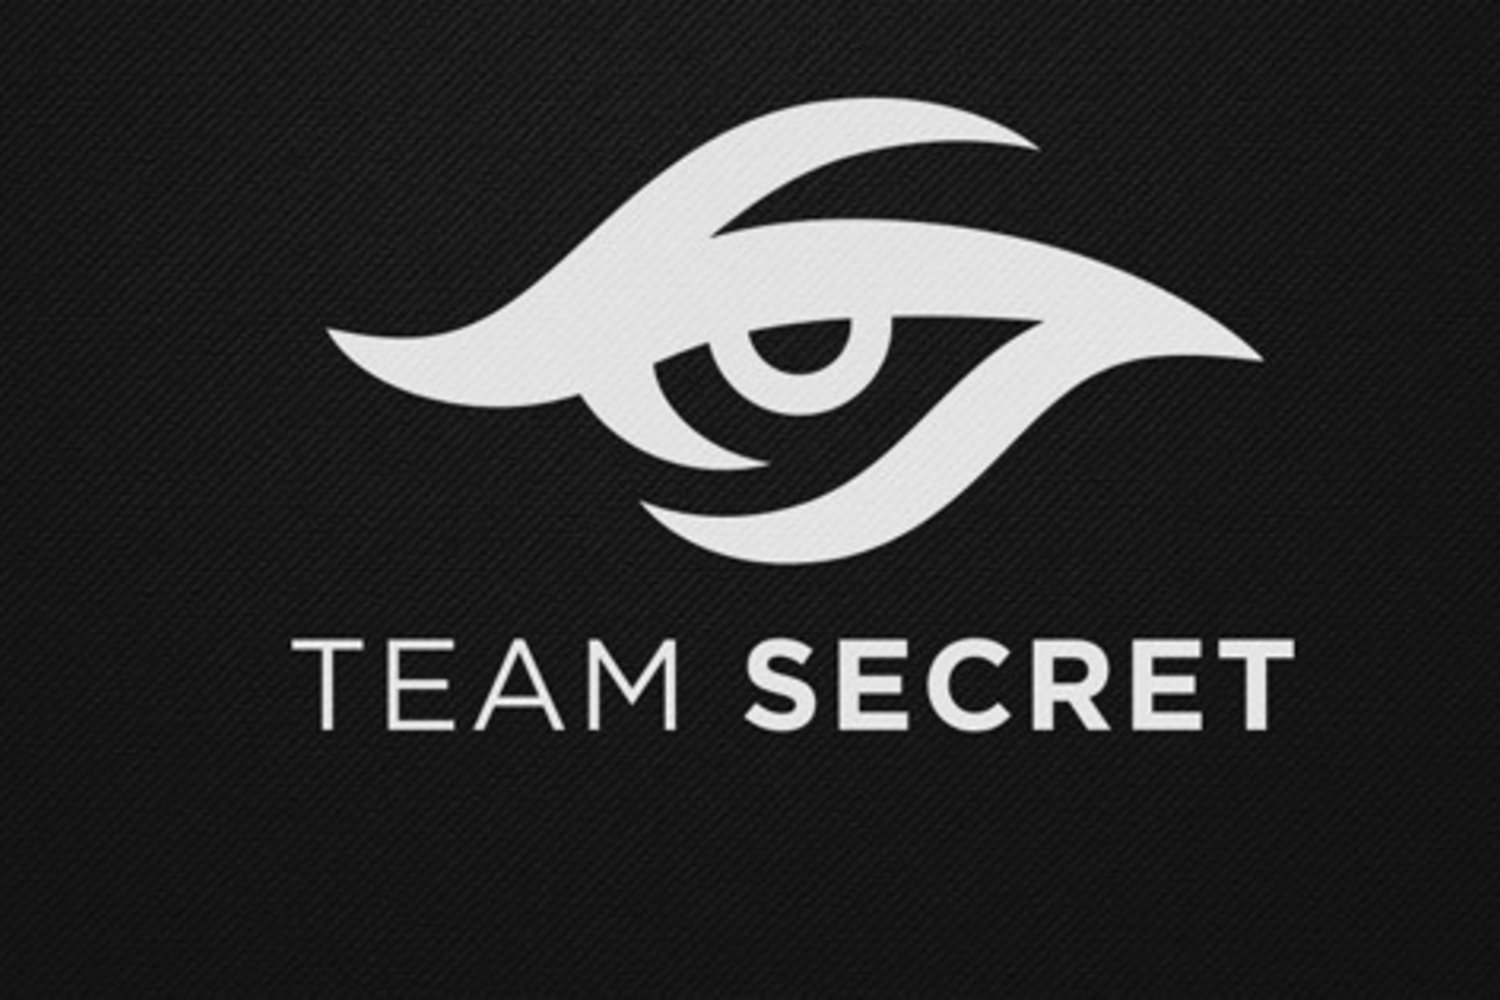 Midone hints at continuance on Team Secret